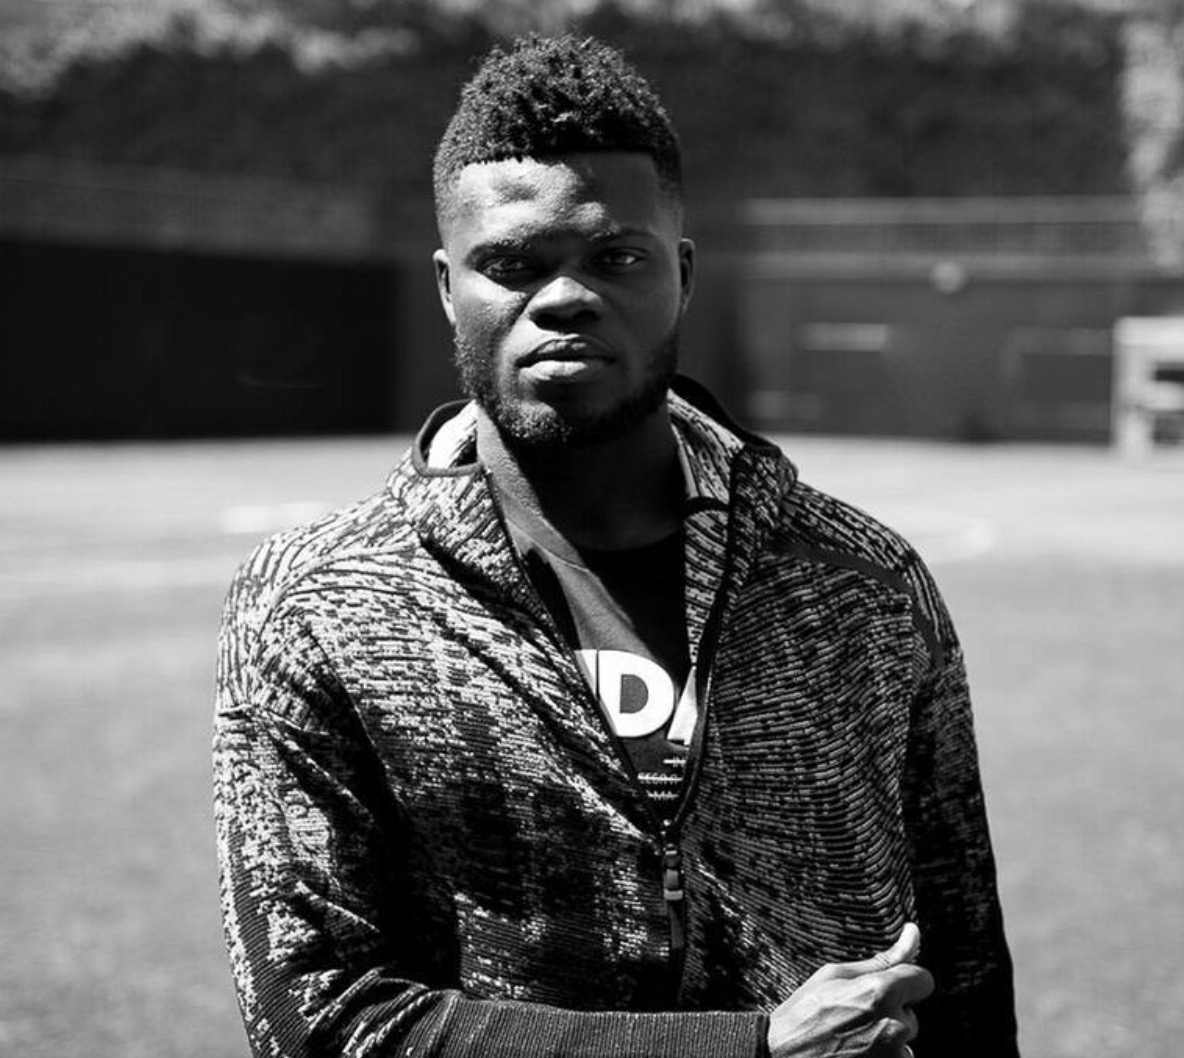 Thomas Partey signs for Arsenal